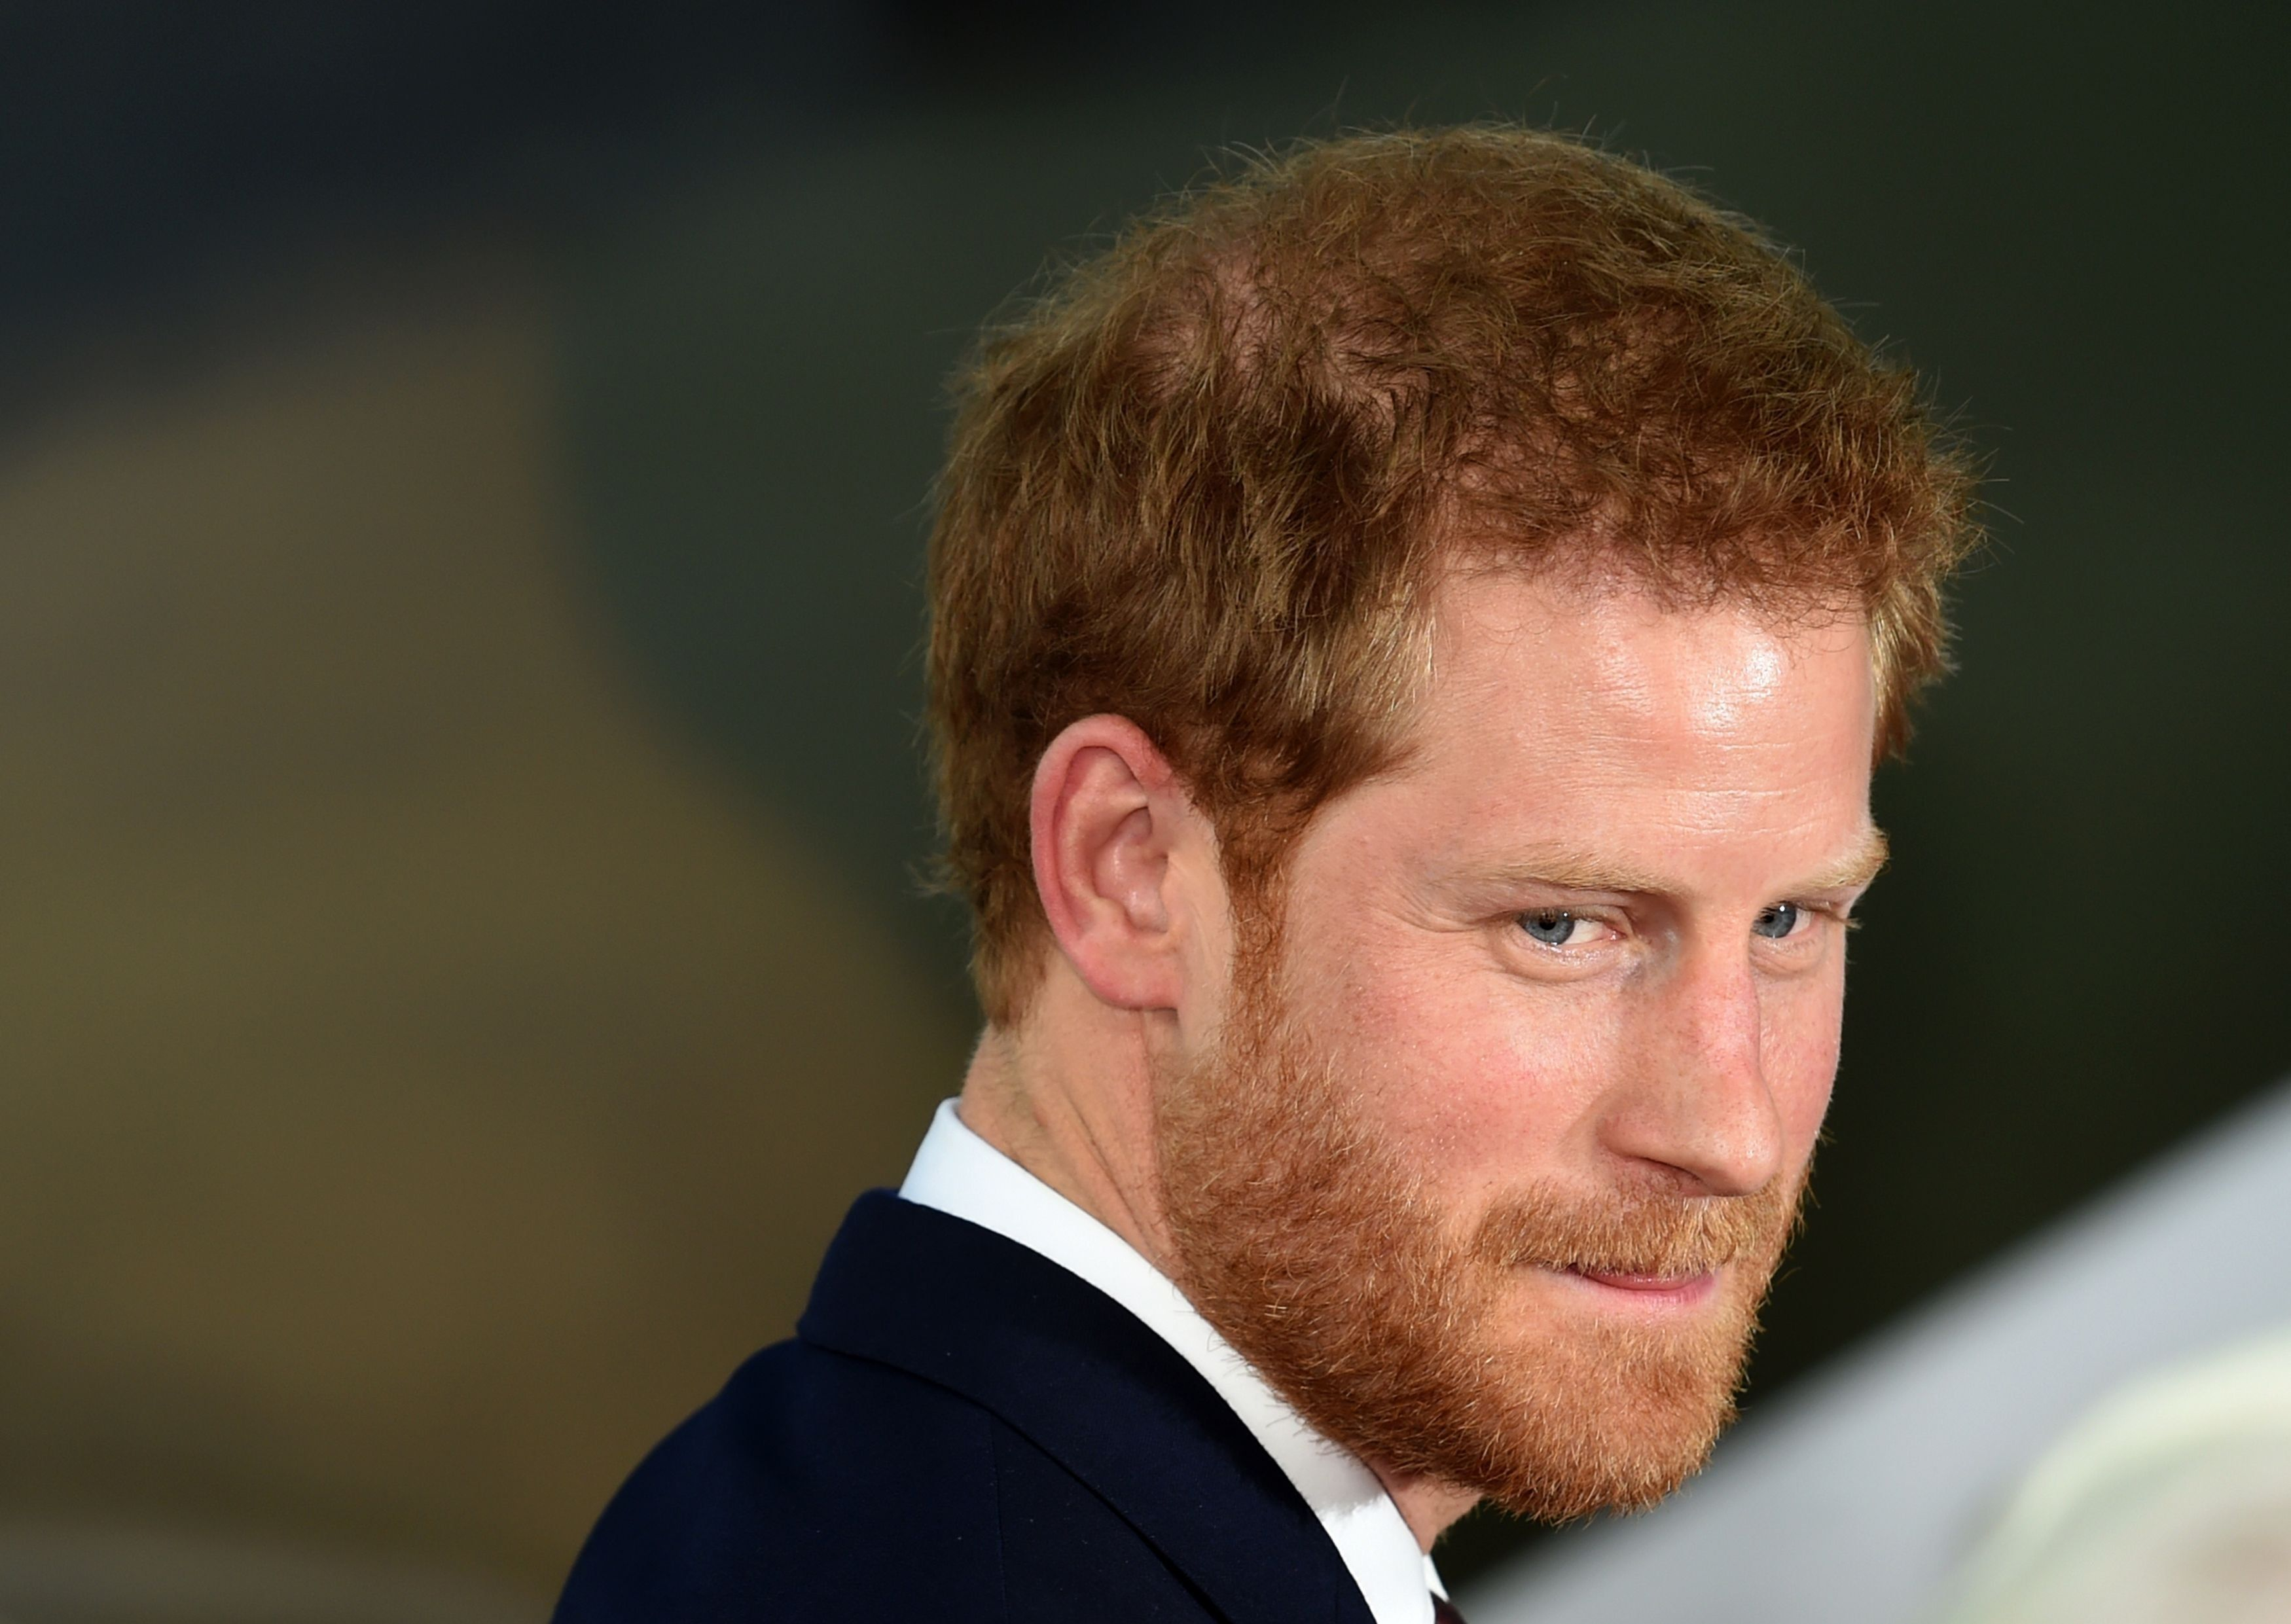 Prince Harry complained the photos of him on a Jamaican beach invaded his